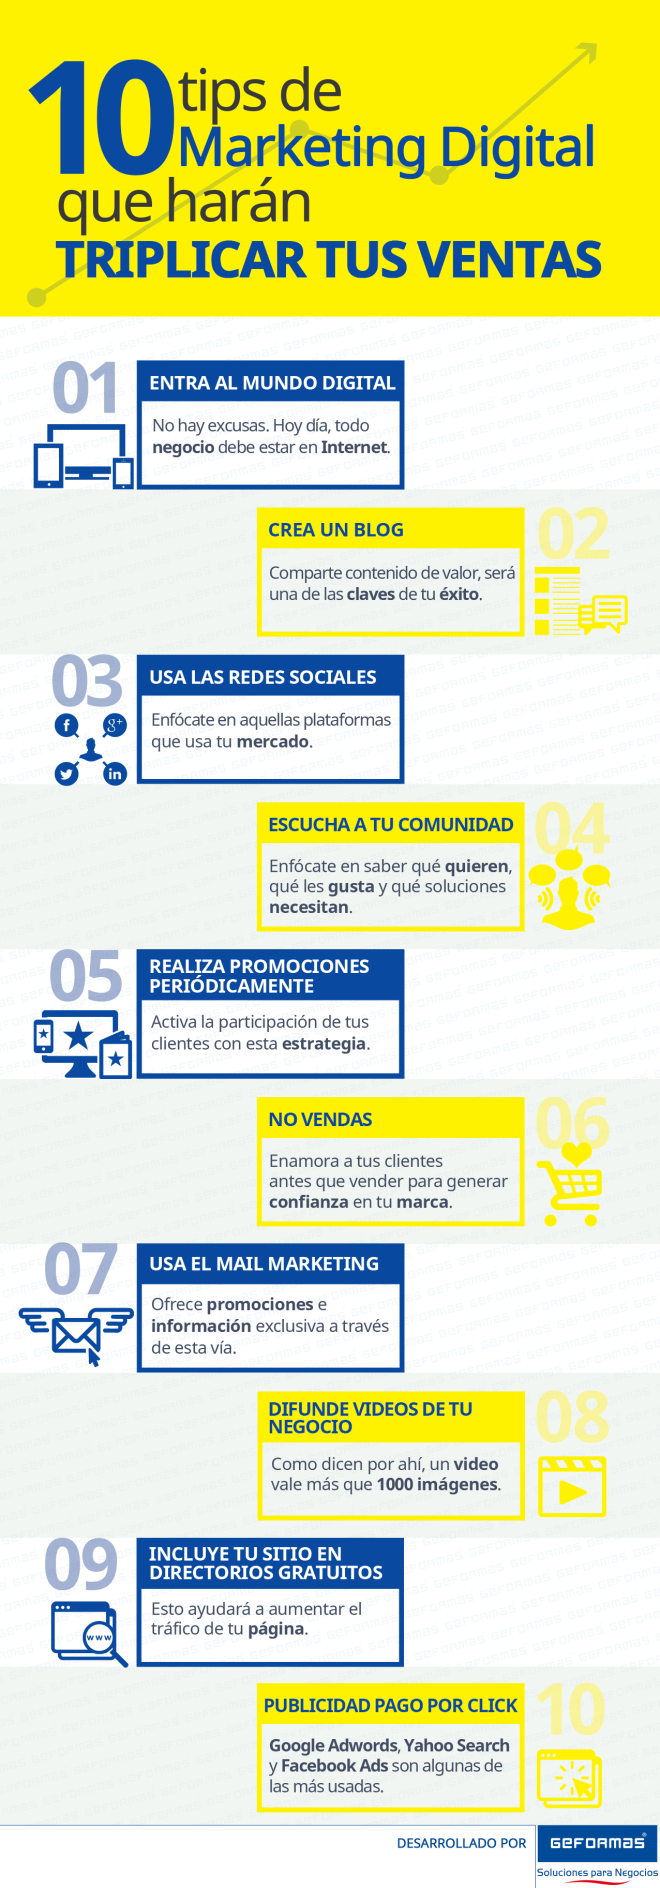 10 consejos de marketing digital para triplicar tus